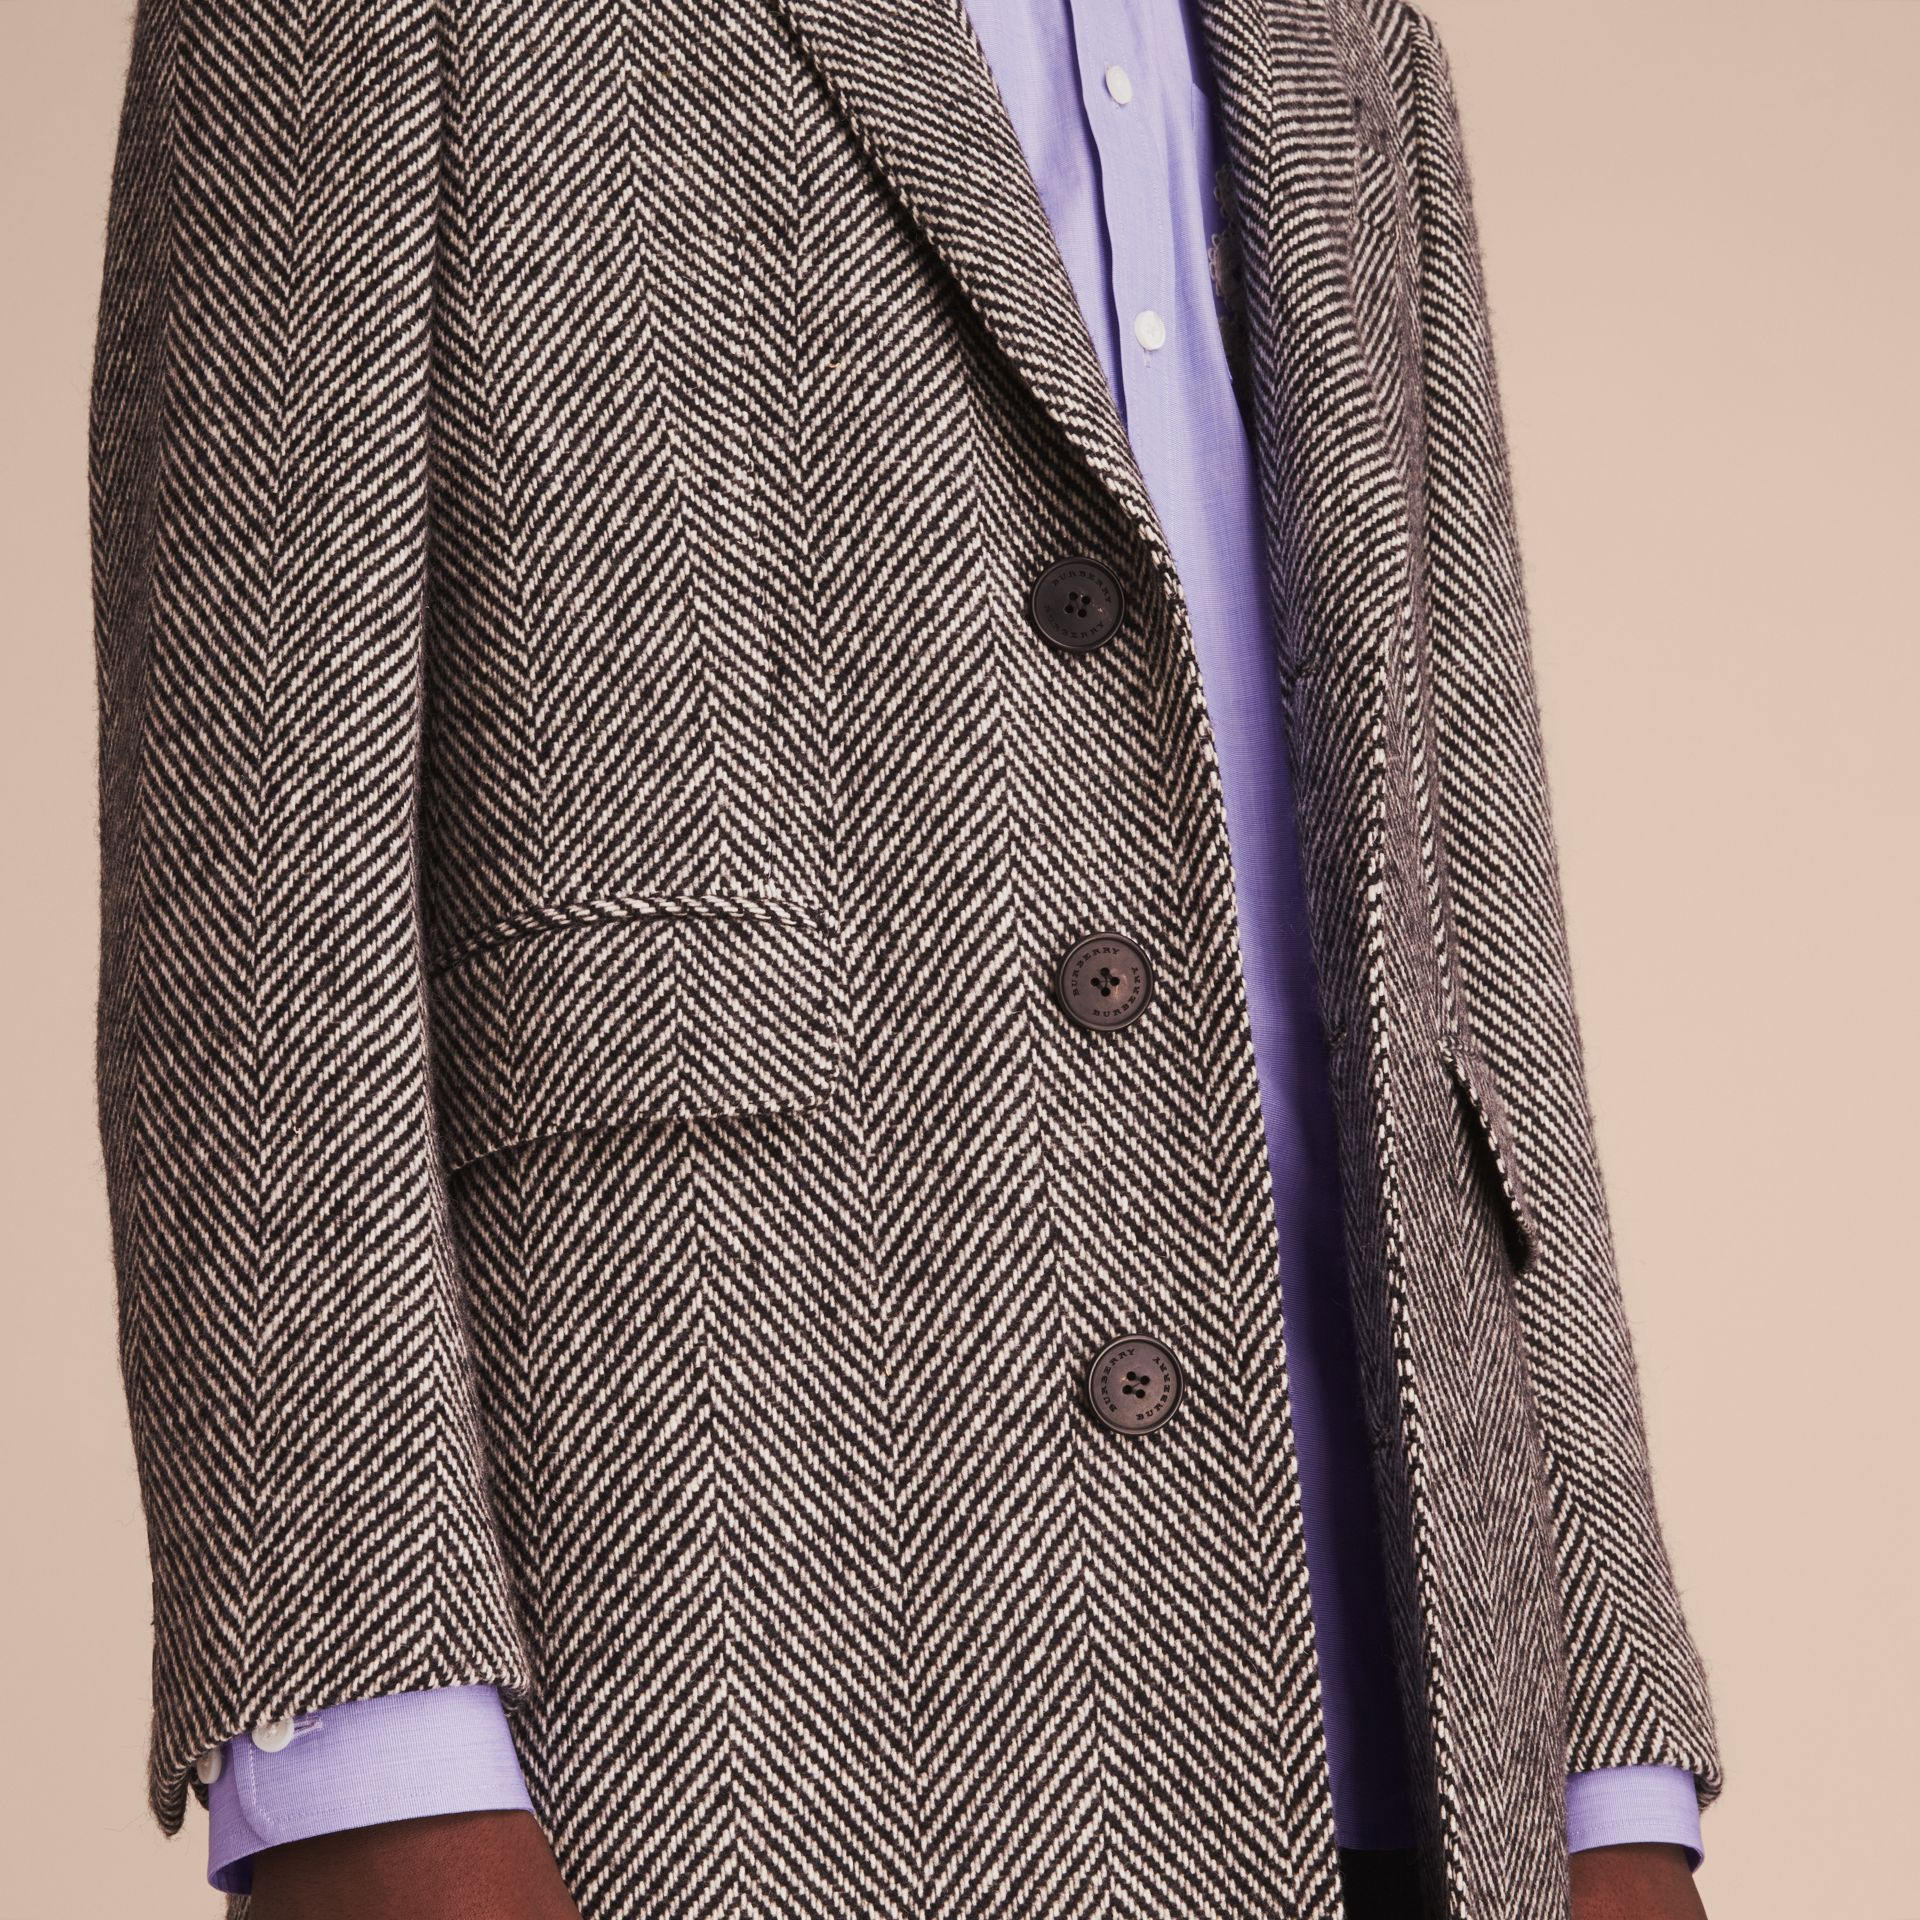 Donegal Herringbone Wool Topcoat in Black - Men | Burberry - gallery image 5